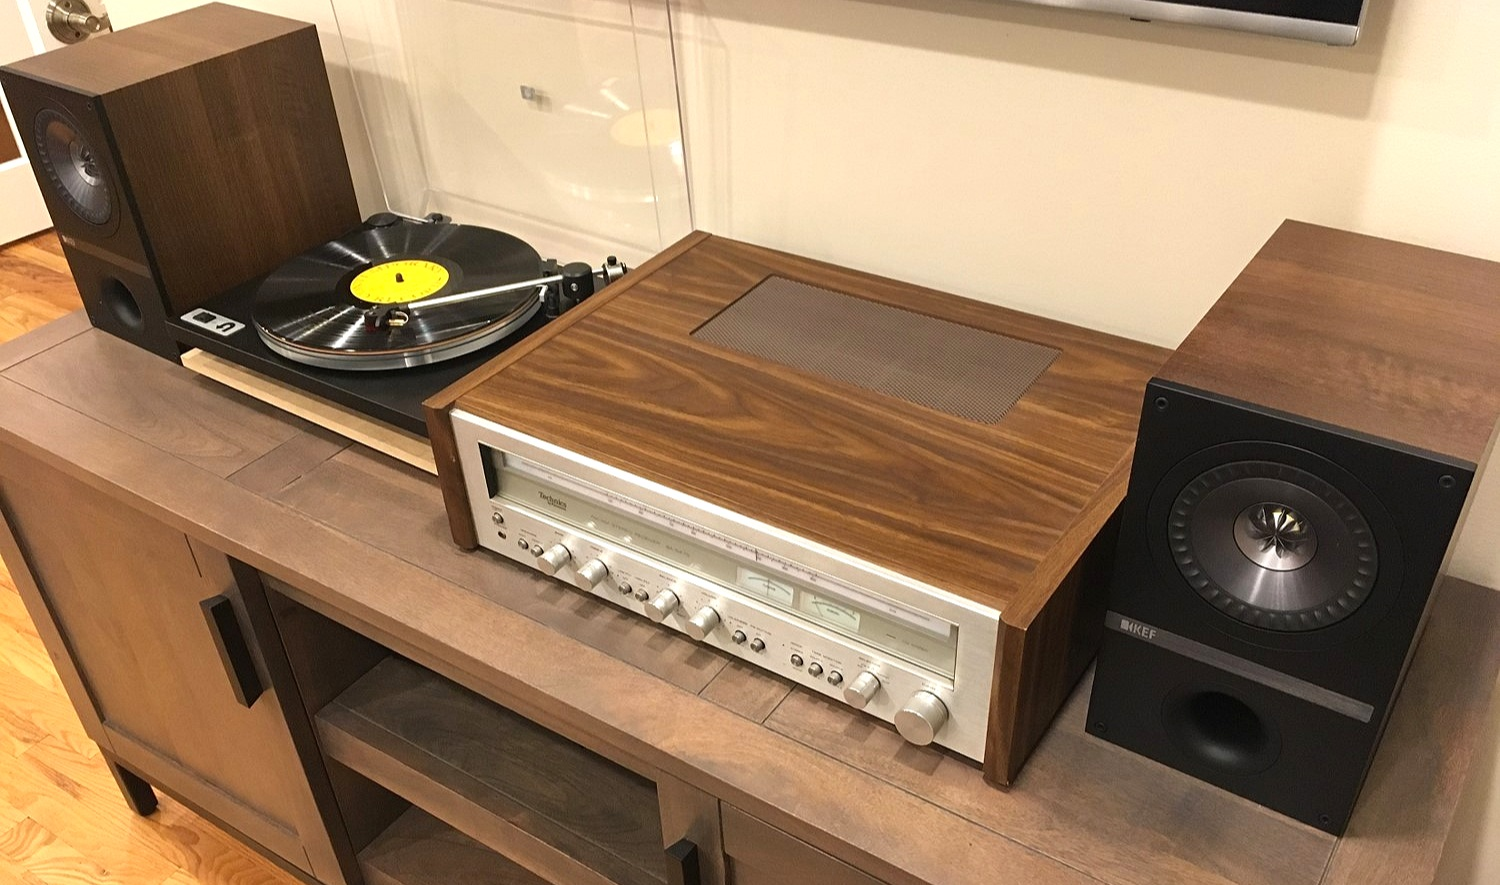 A modern vintage hybrid setup with a late 70's Technics receiver paired with a modern U-Turn Orbit and pair of KEF Q100 speakers